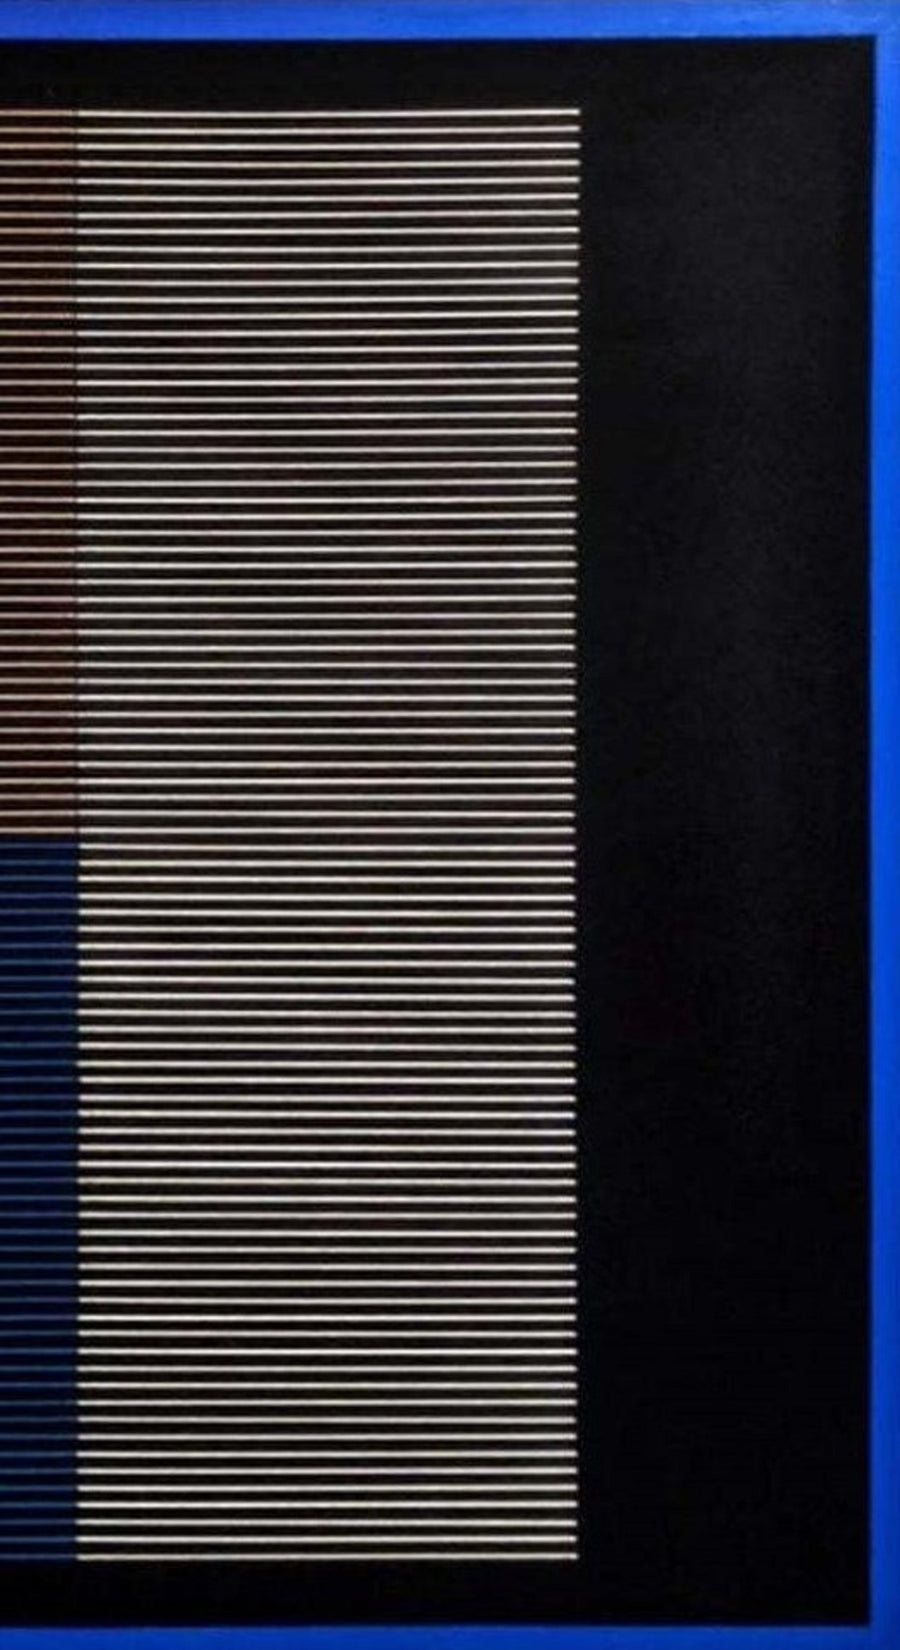 Blue, black, white, and being textile artwork on canvas by Mexico City artist Andreas Diaz Andersson. Represented by fine art and design gallery Tuleste Factory in New York City.